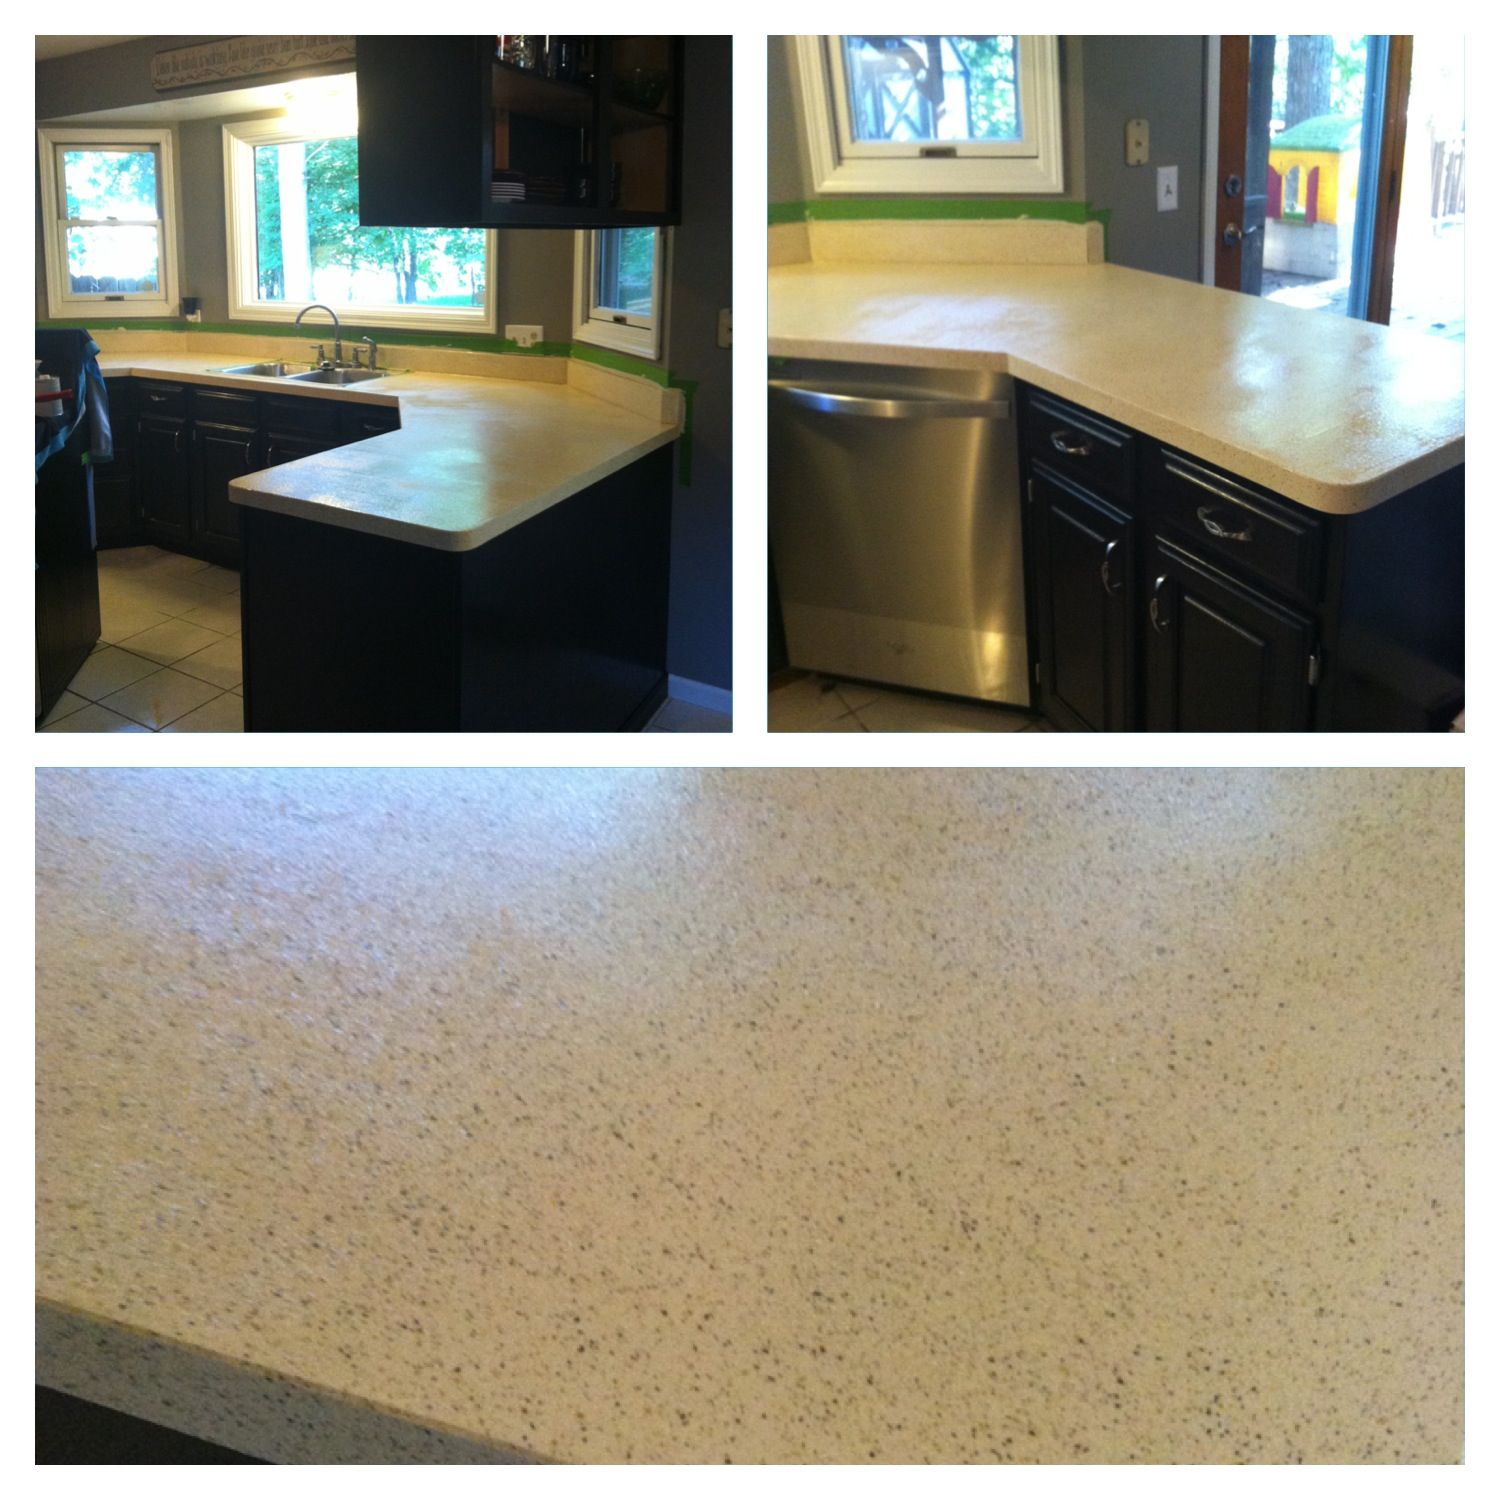 Messy Kitchen Counter: Rustoleum Countertop Transformations. Color Is Pebbled